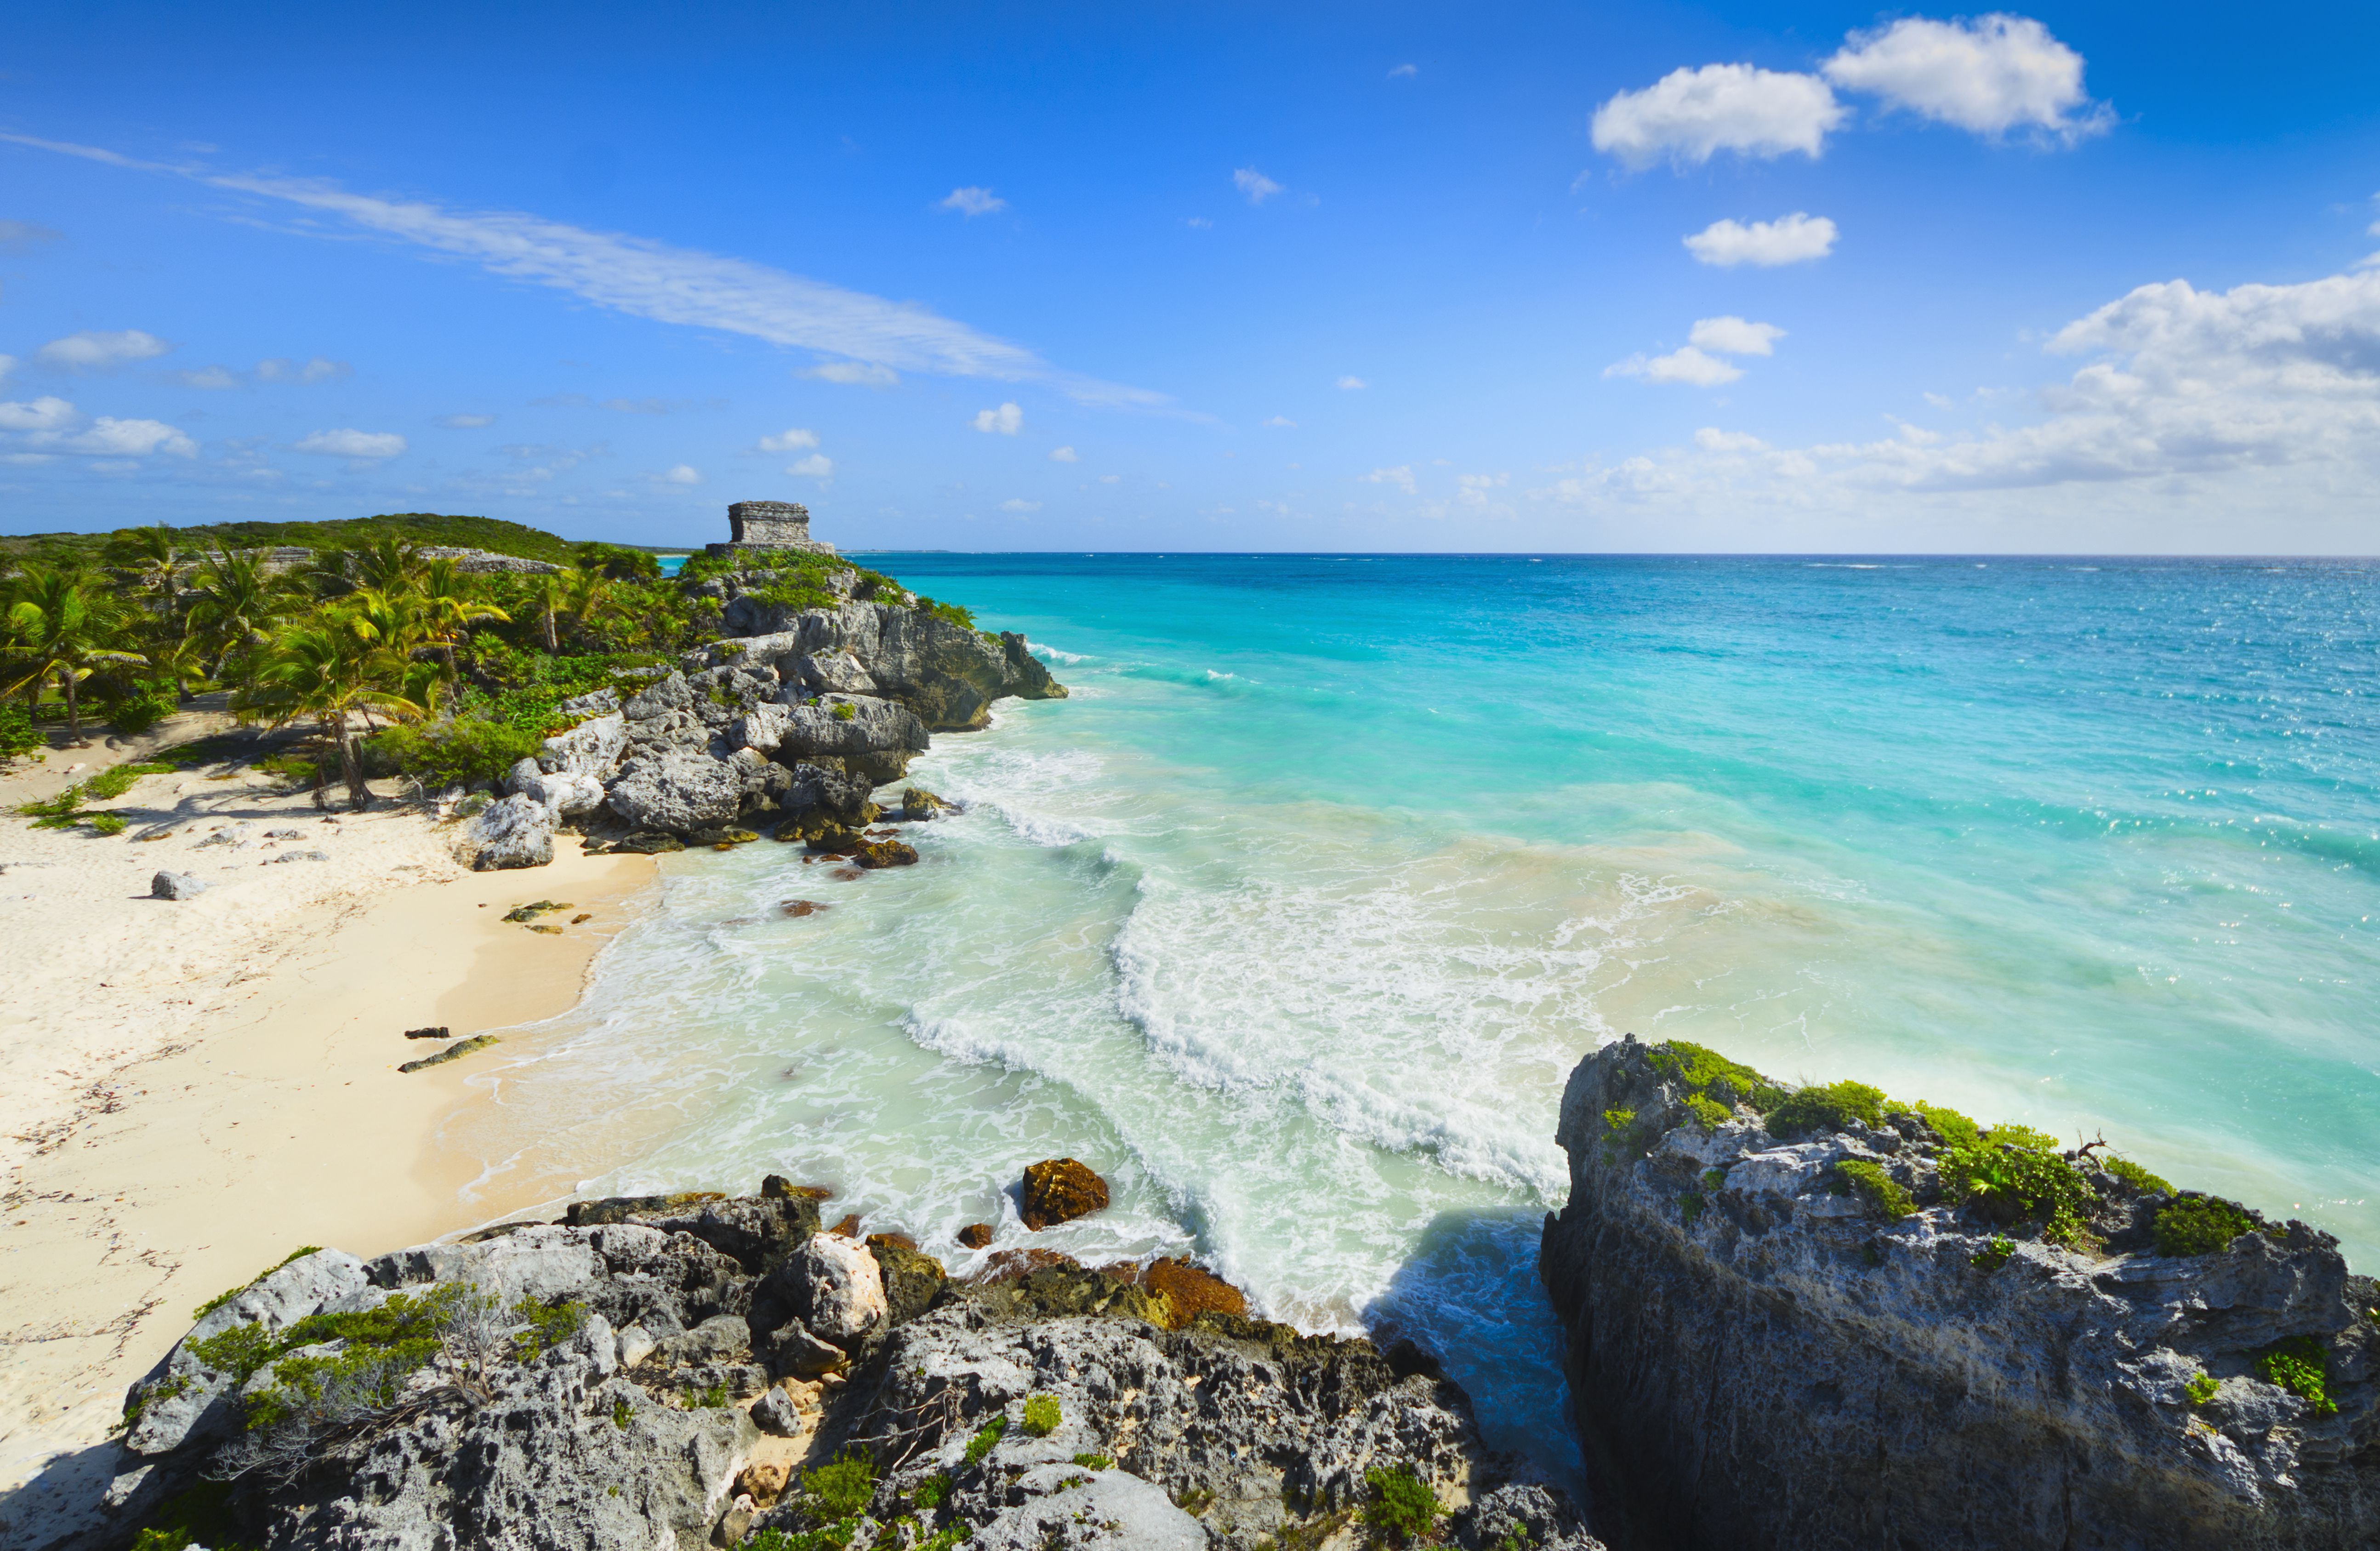 The Top 10 Things to Do in Tulum